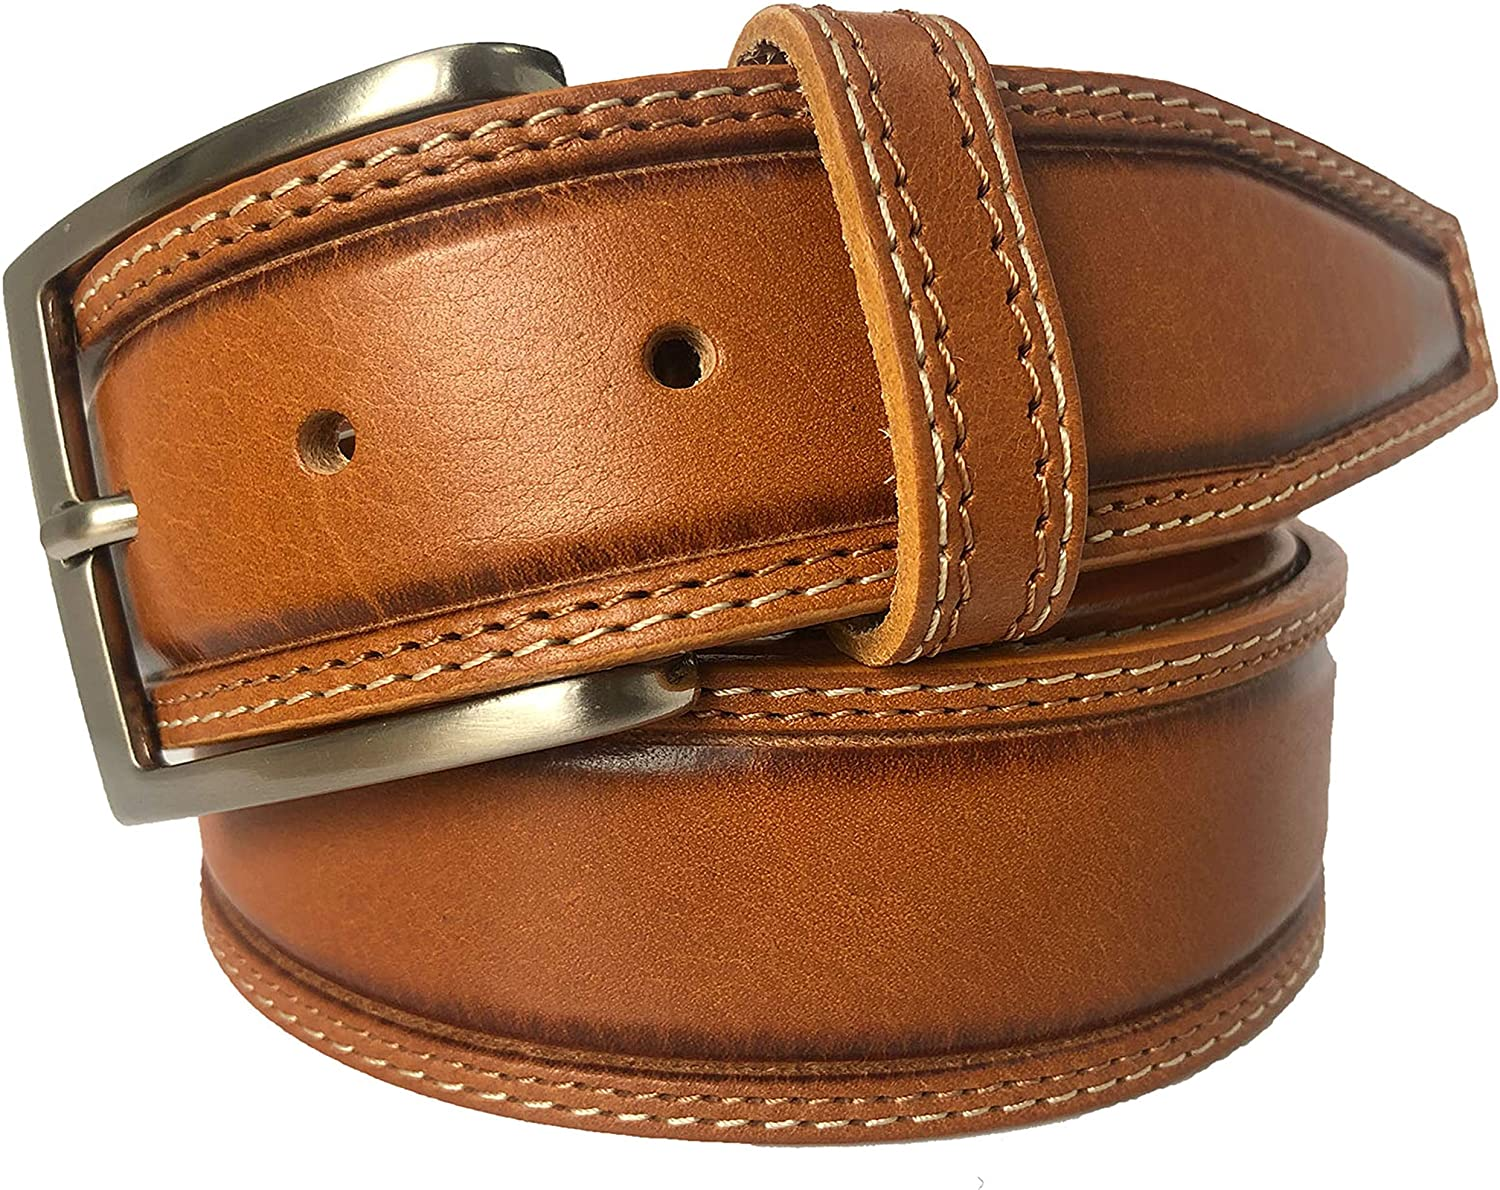 MENS BELT HONEY TAN 100% ITALIAN FULL GRAIN SINGLE SKIN HIDE LEATHER BELT